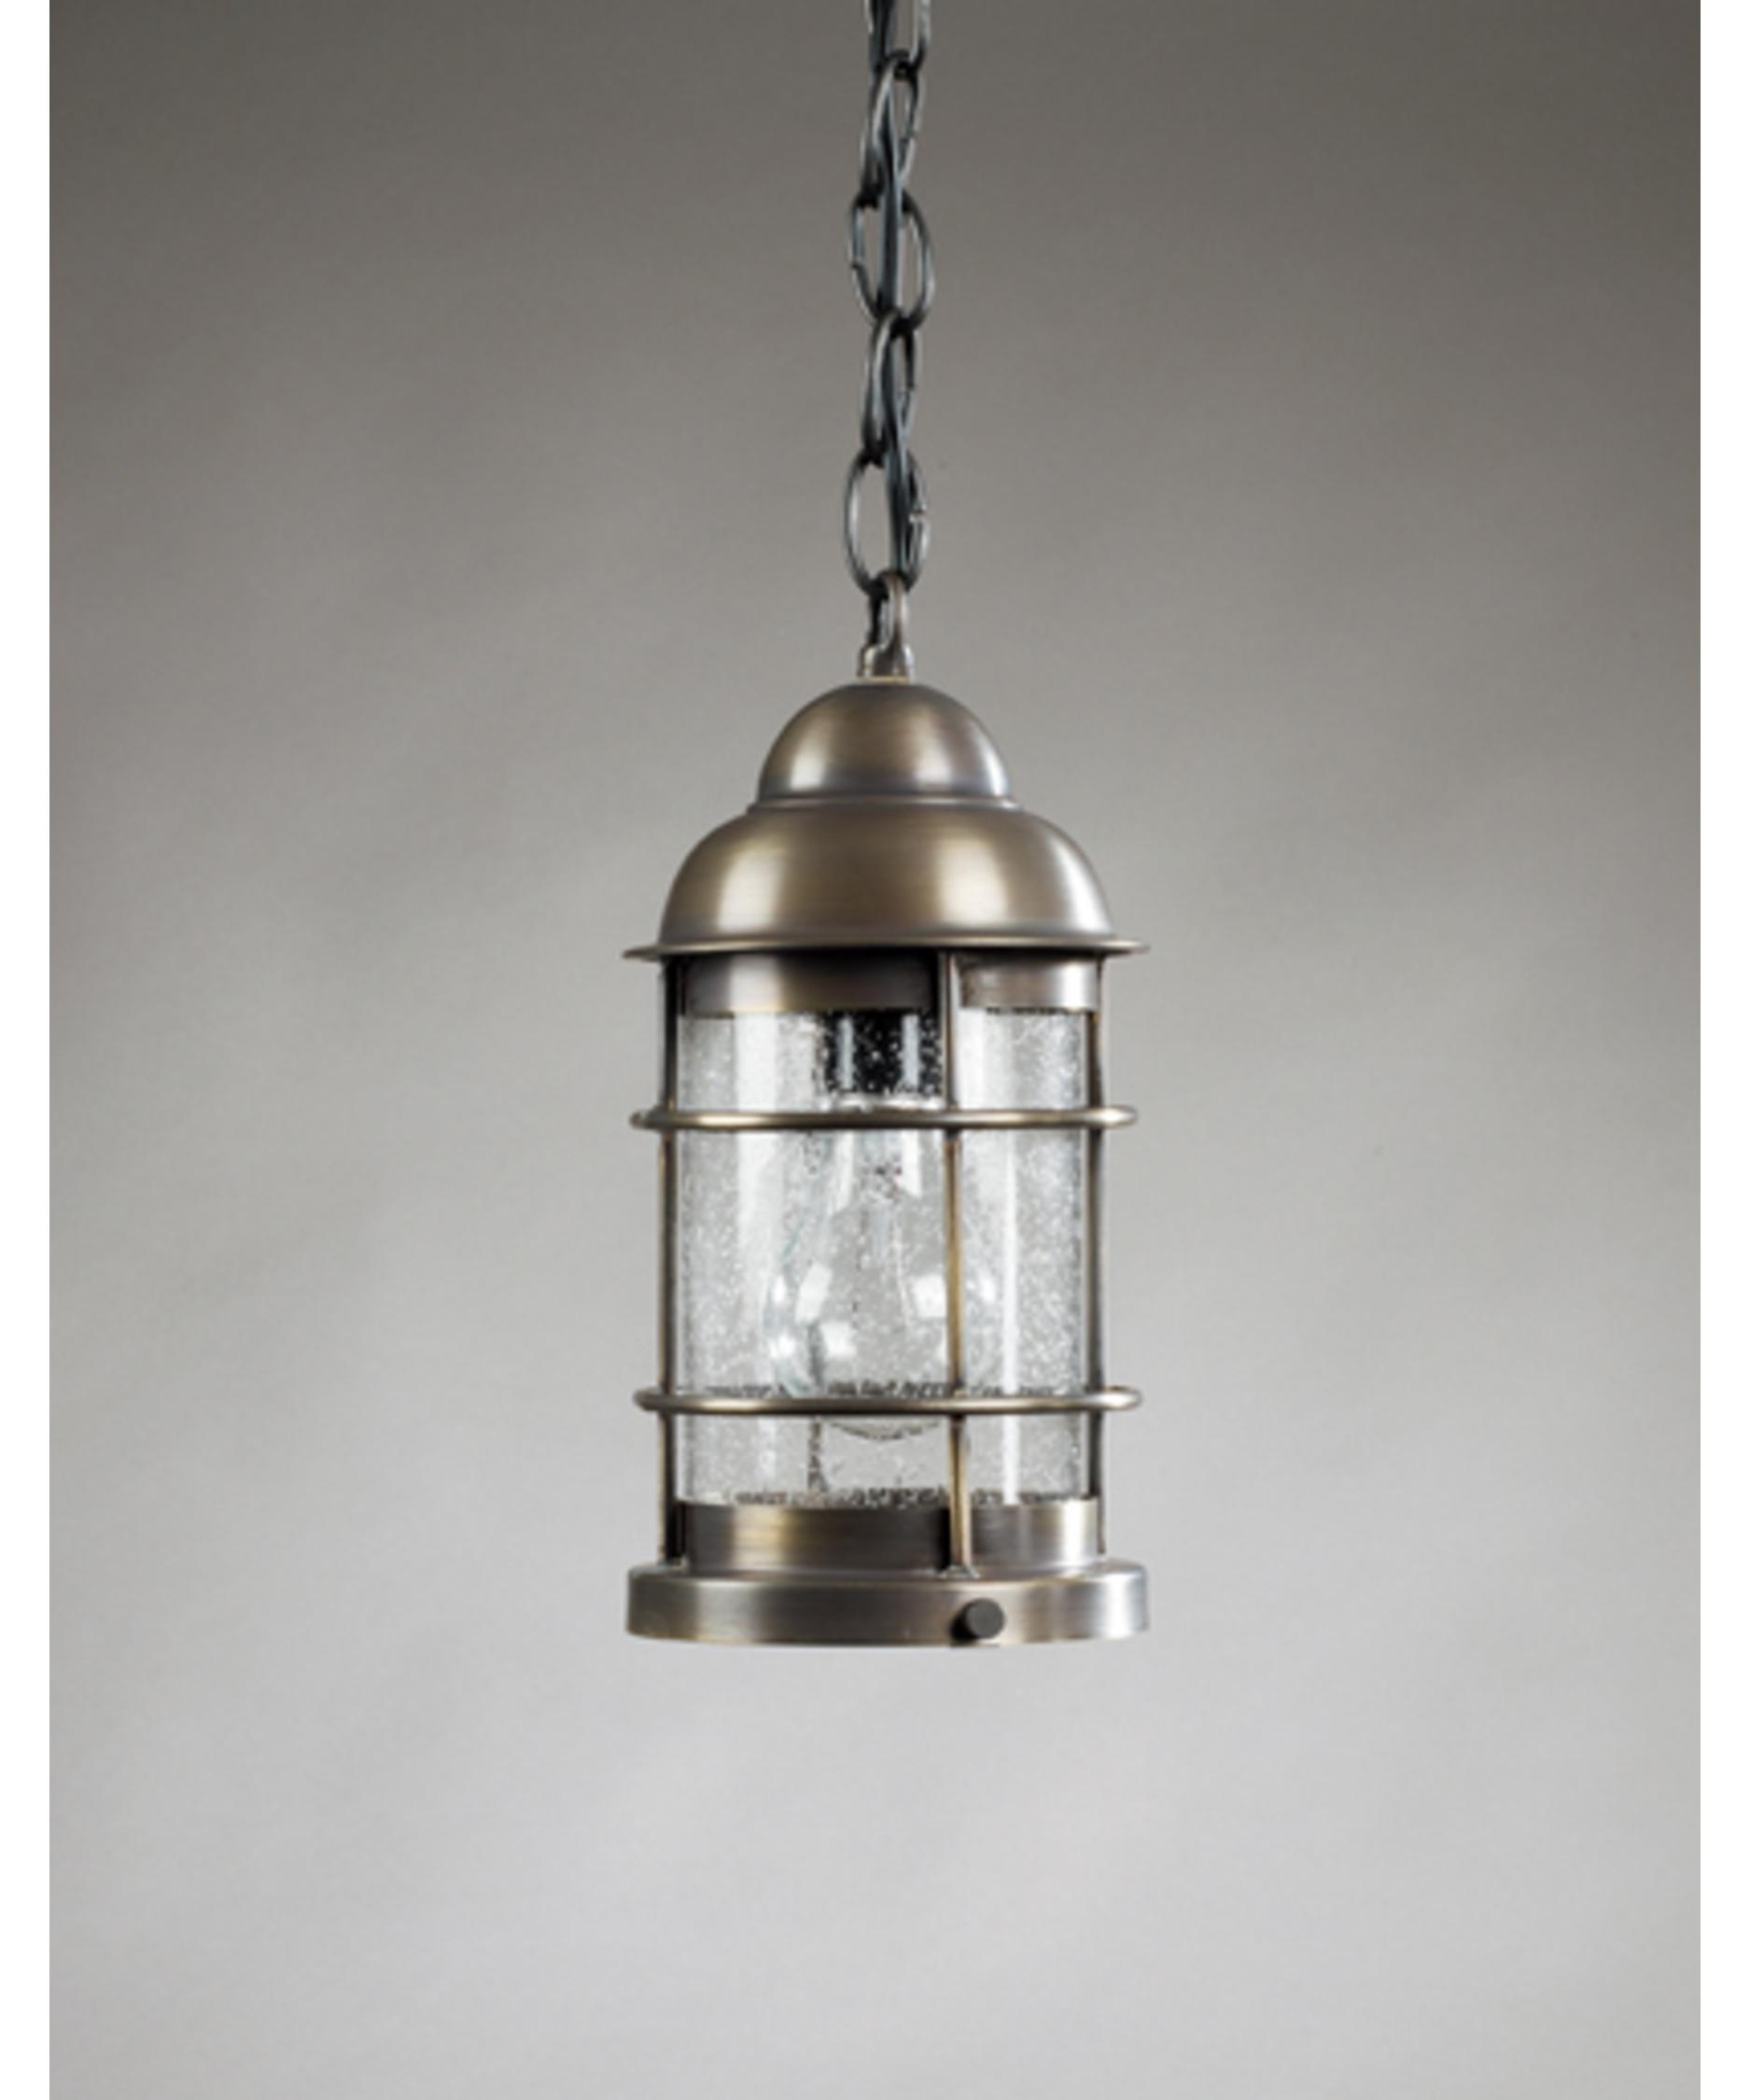 Popular Photo of Nautical Outdoor Hanging Lights